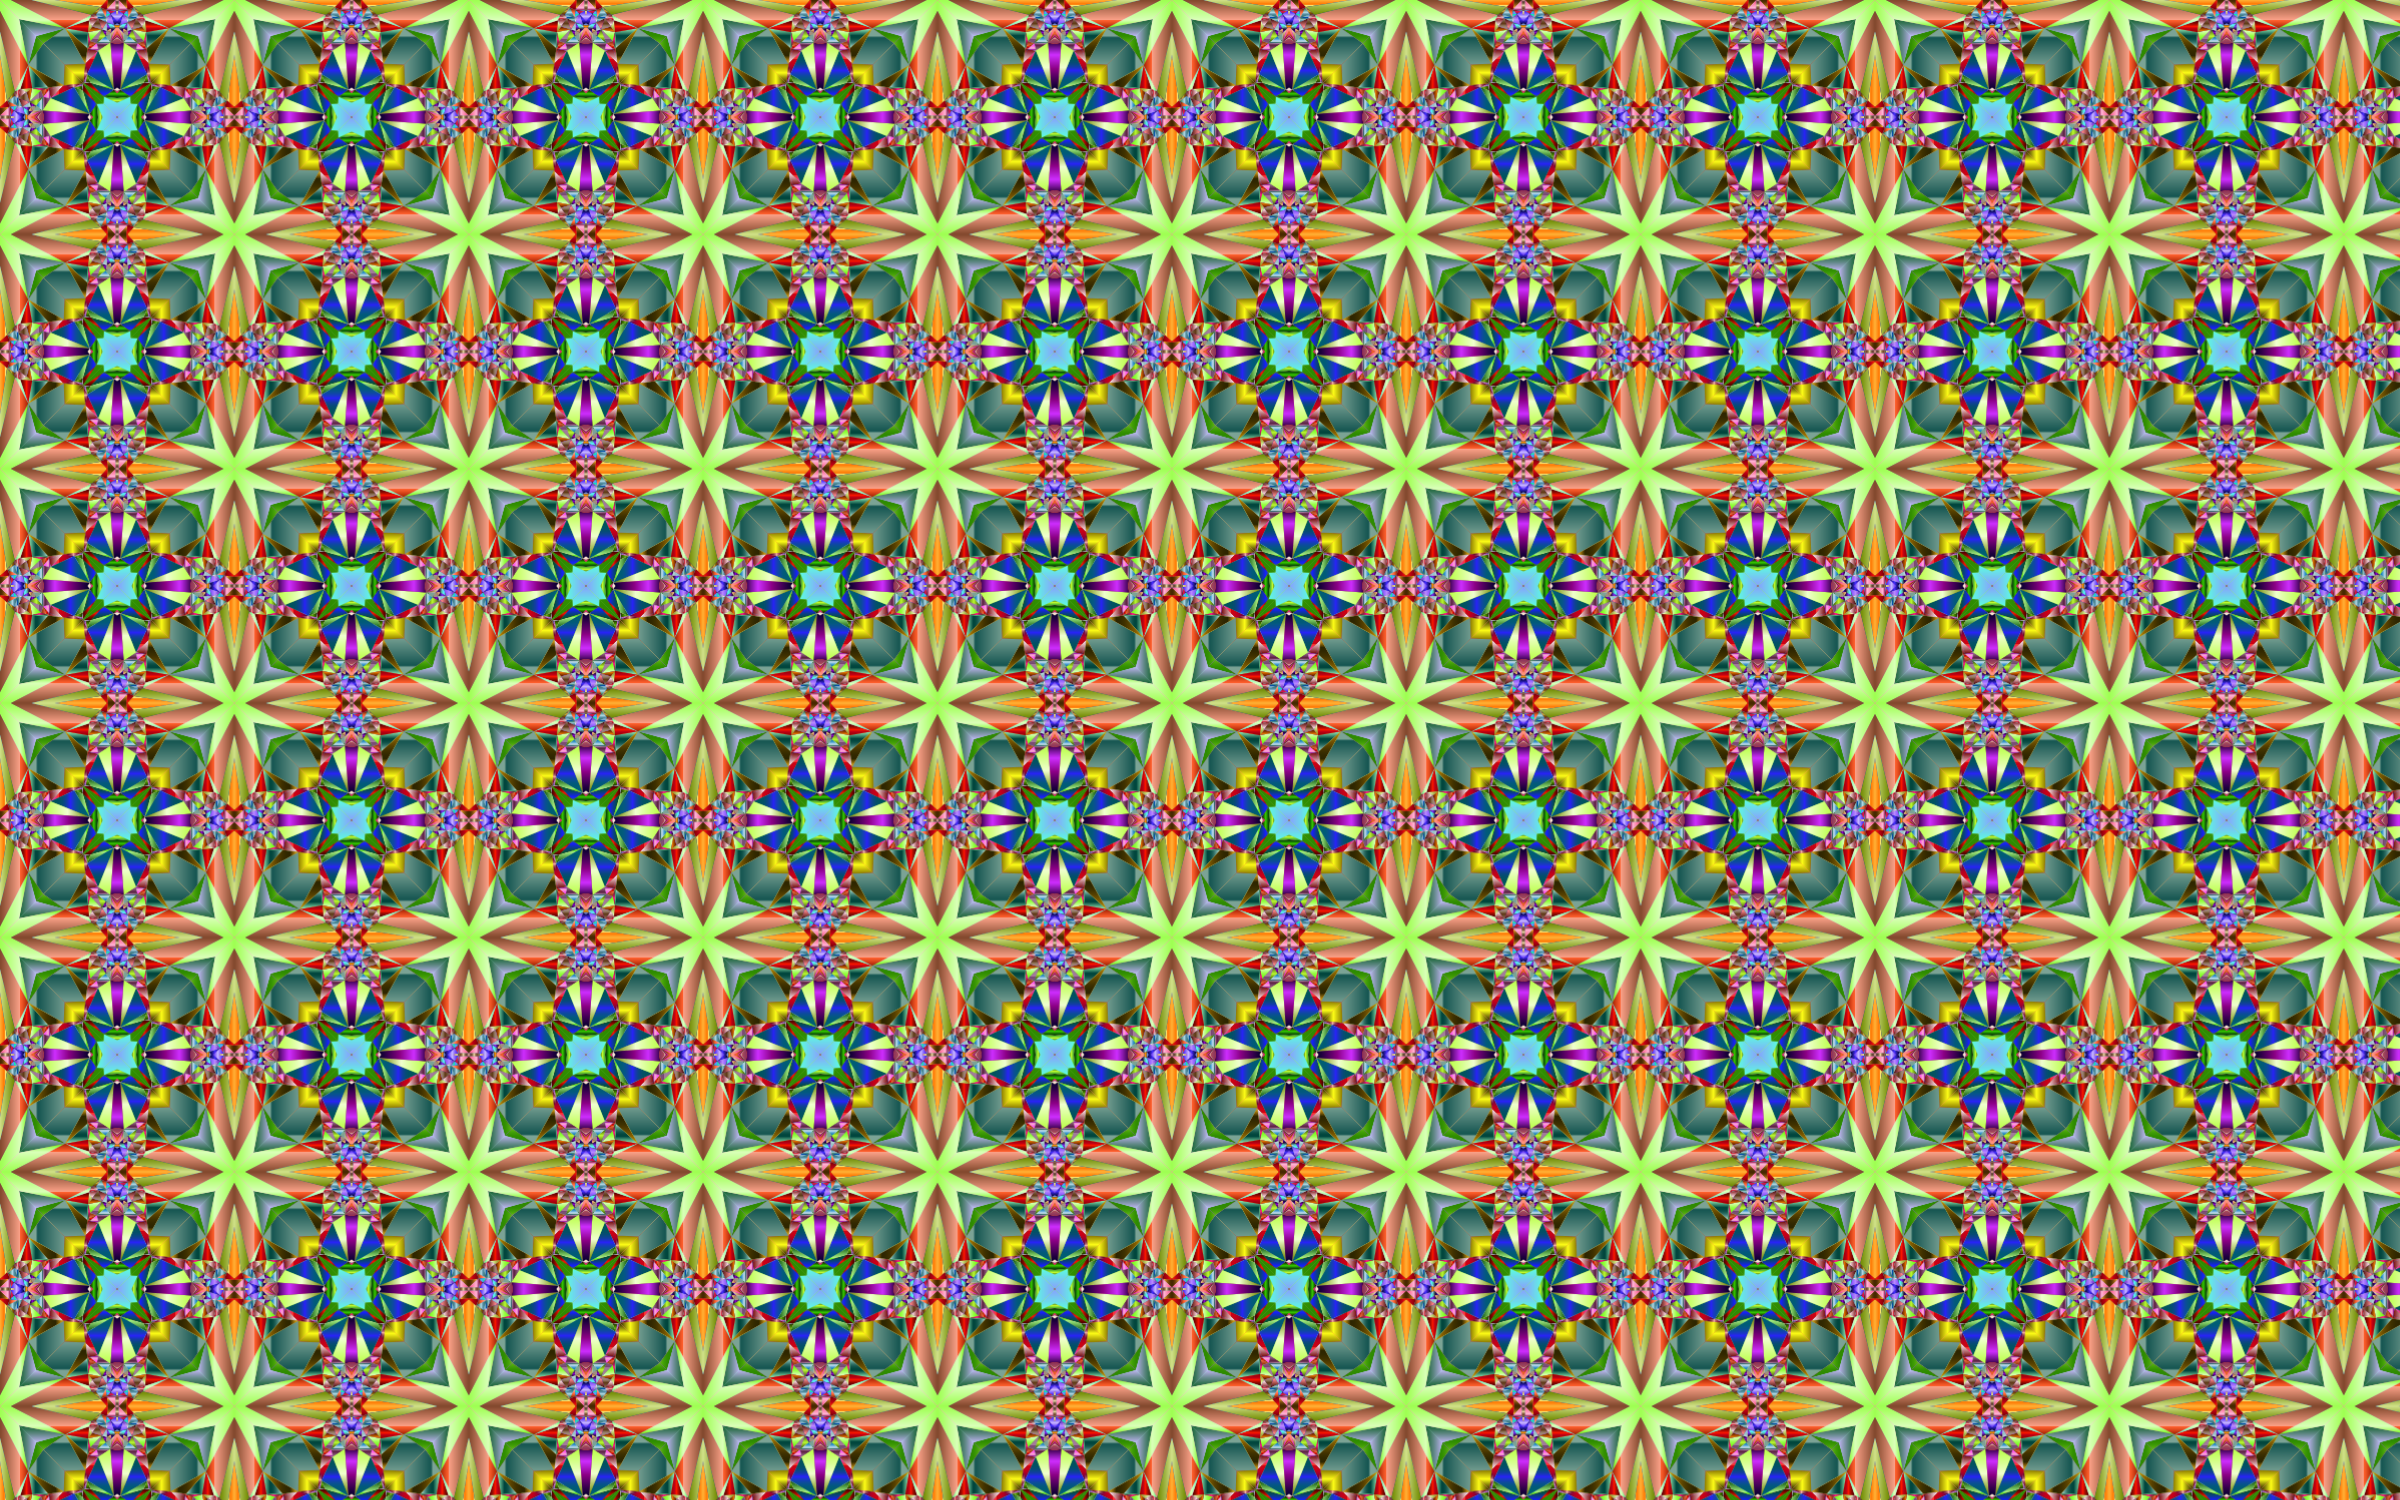 Seamless Psychedelic Pattern 4 by GDJ